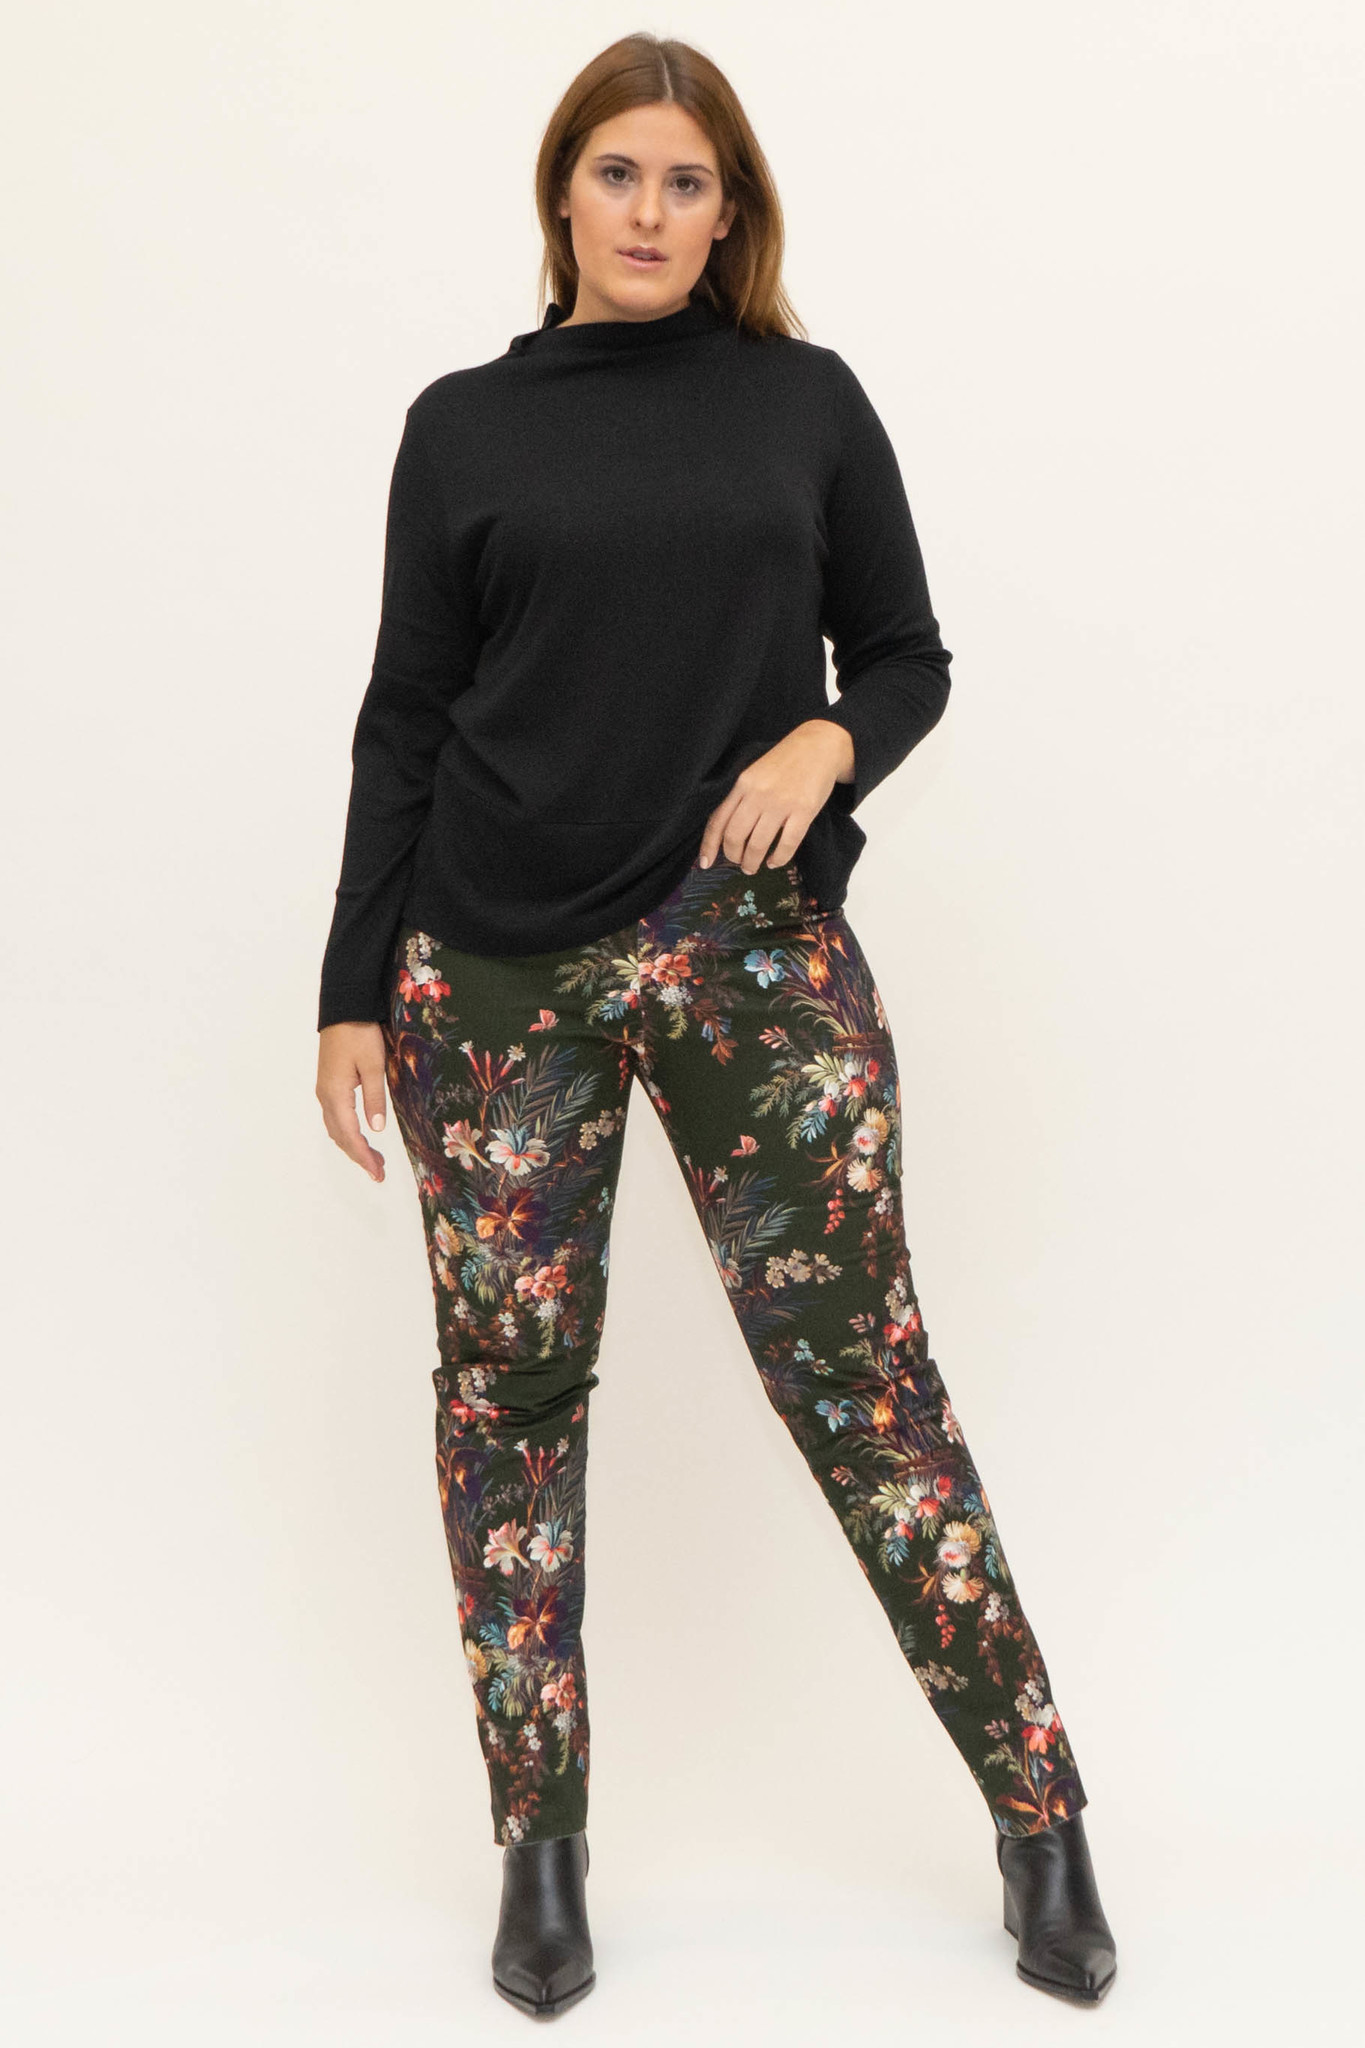 DAVINIA Trousers in printed Cotton stretch-2